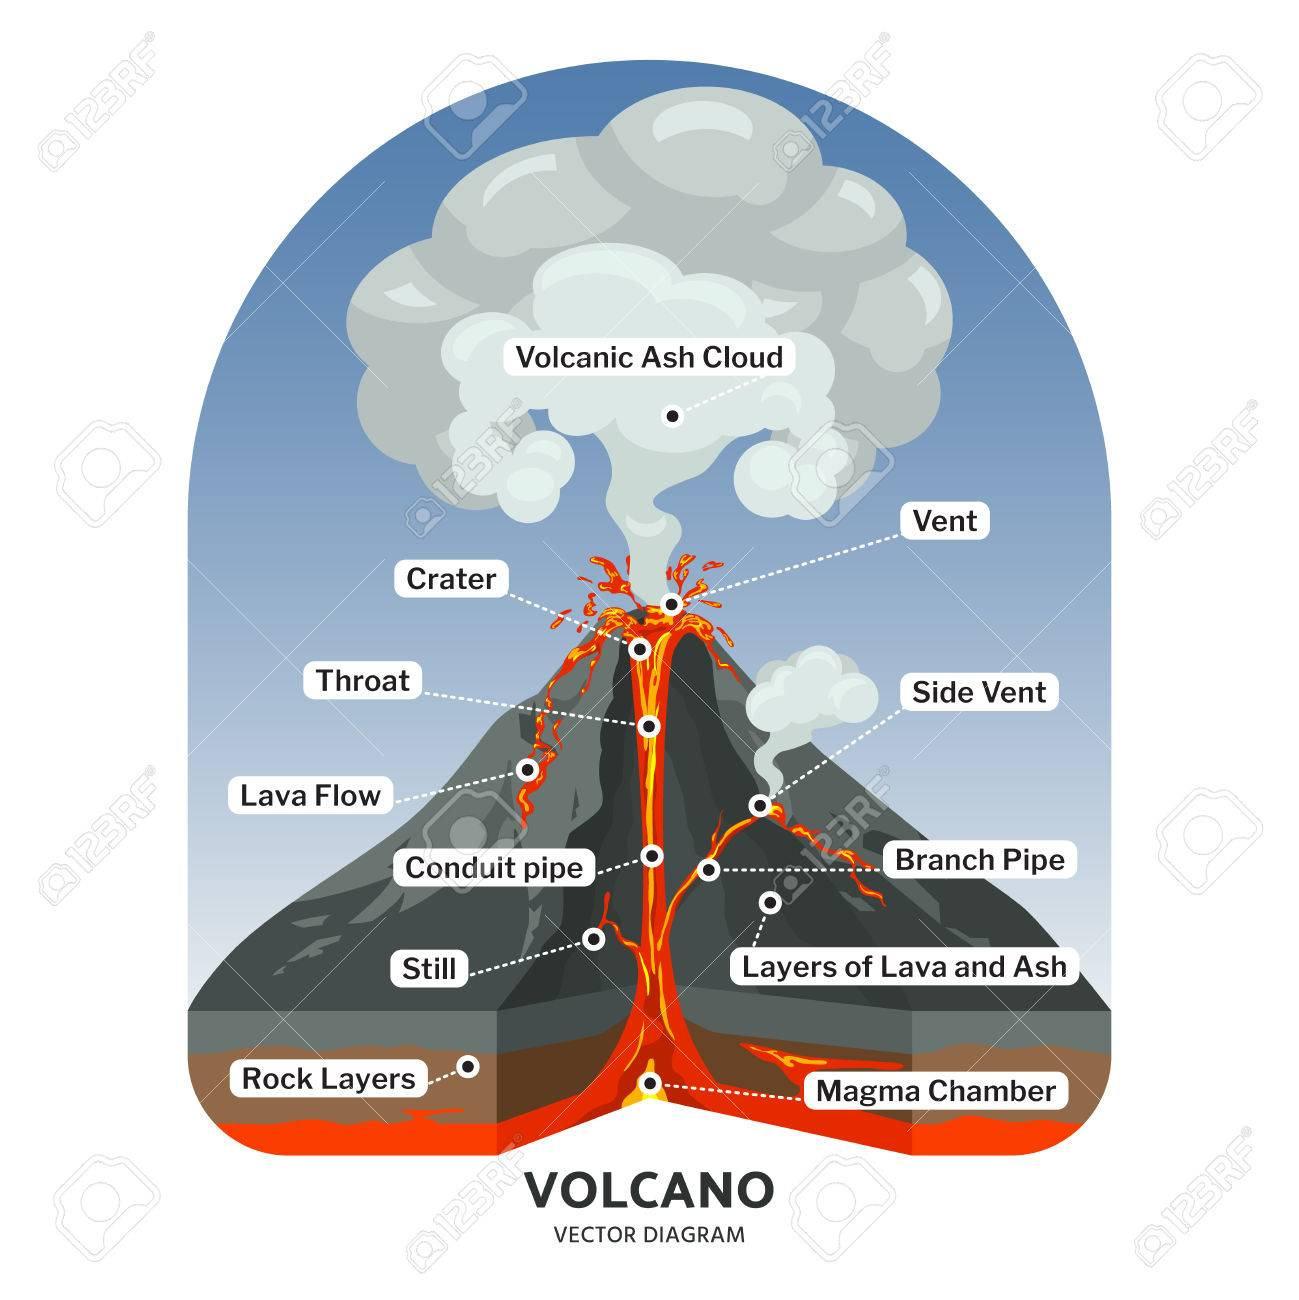 85650023 volcano cross section with hot lava and volcanic ash cloud vector diagram illustration of volcano mo volcano cross section with hot lava and volcanic ash cloud vector